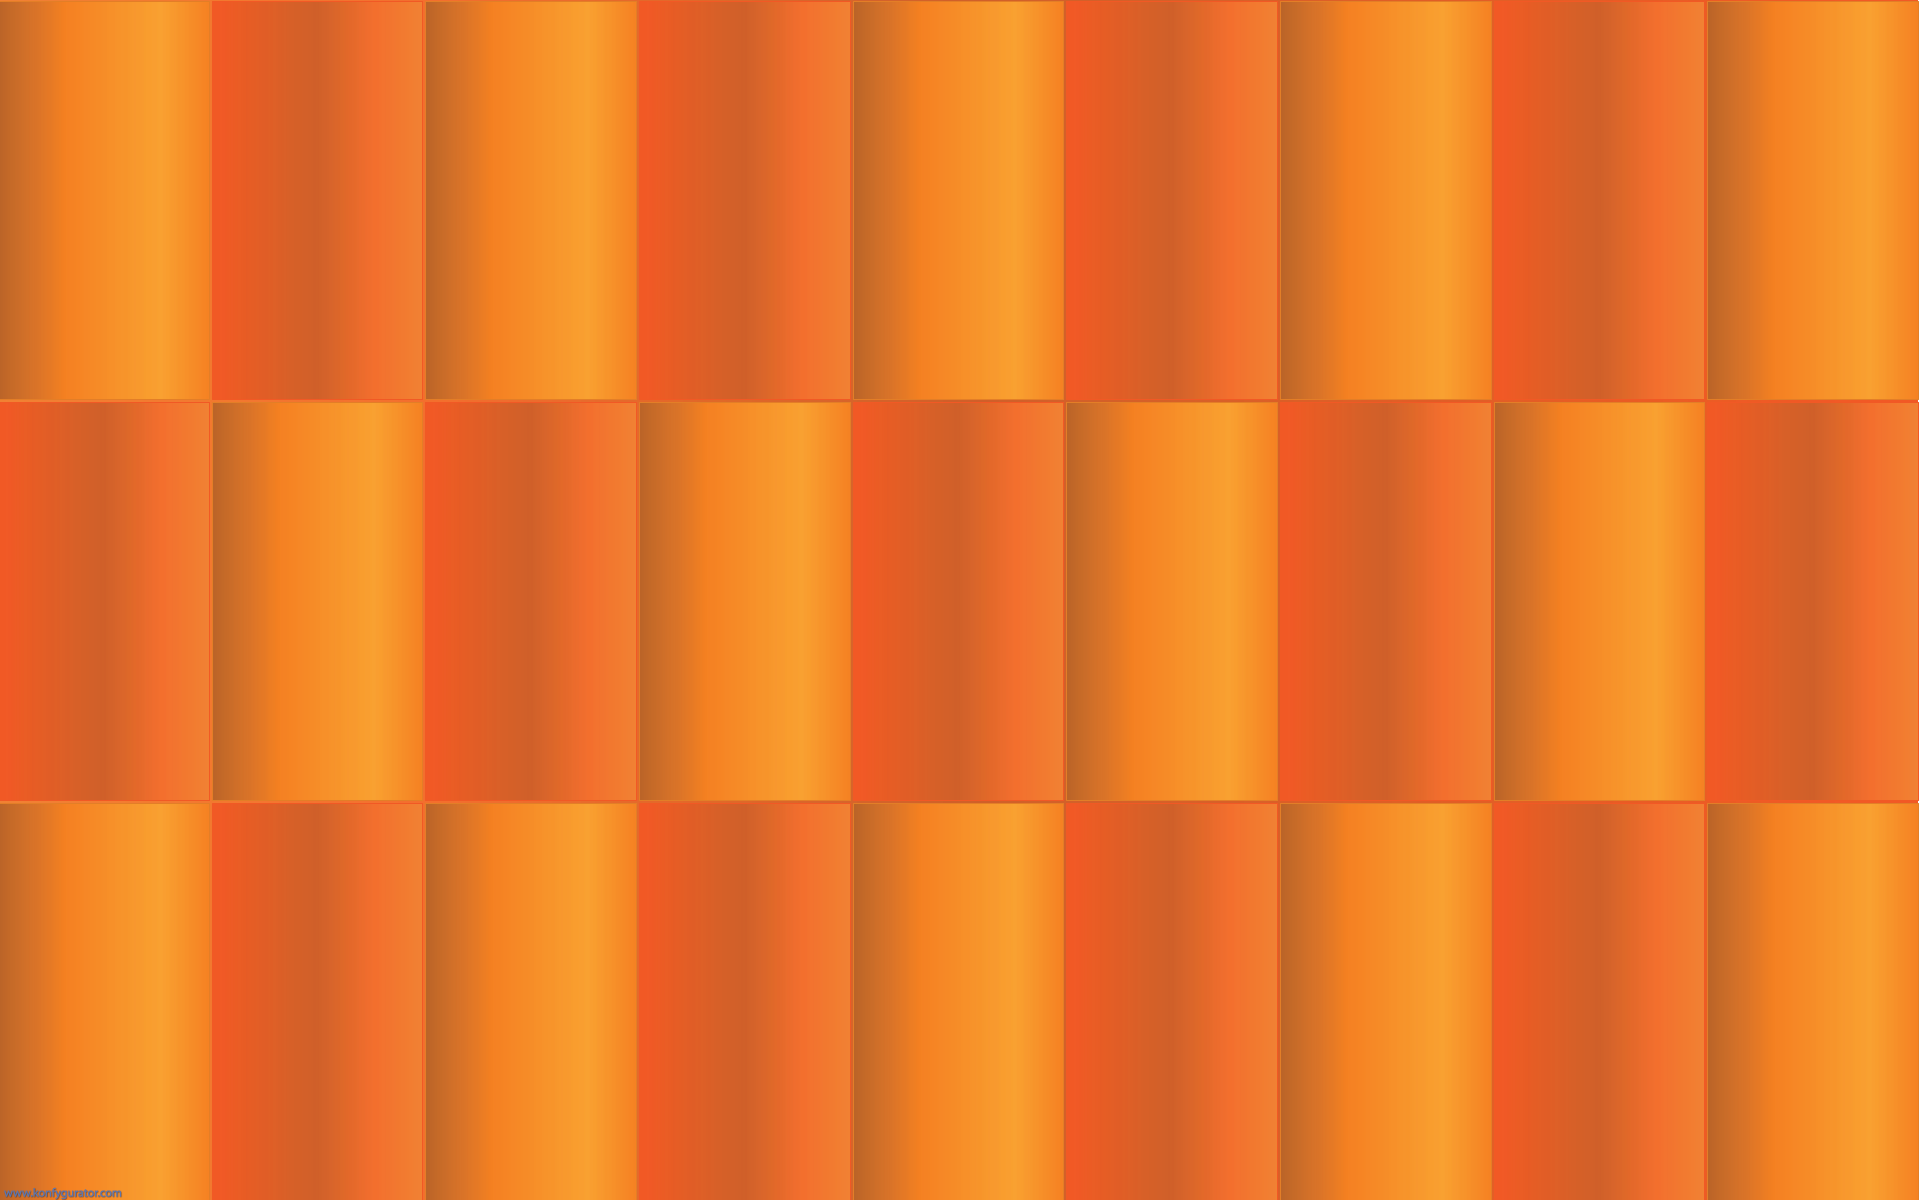 HD Wallpapers - 3D & Abstract - rectangles, orange, yellow